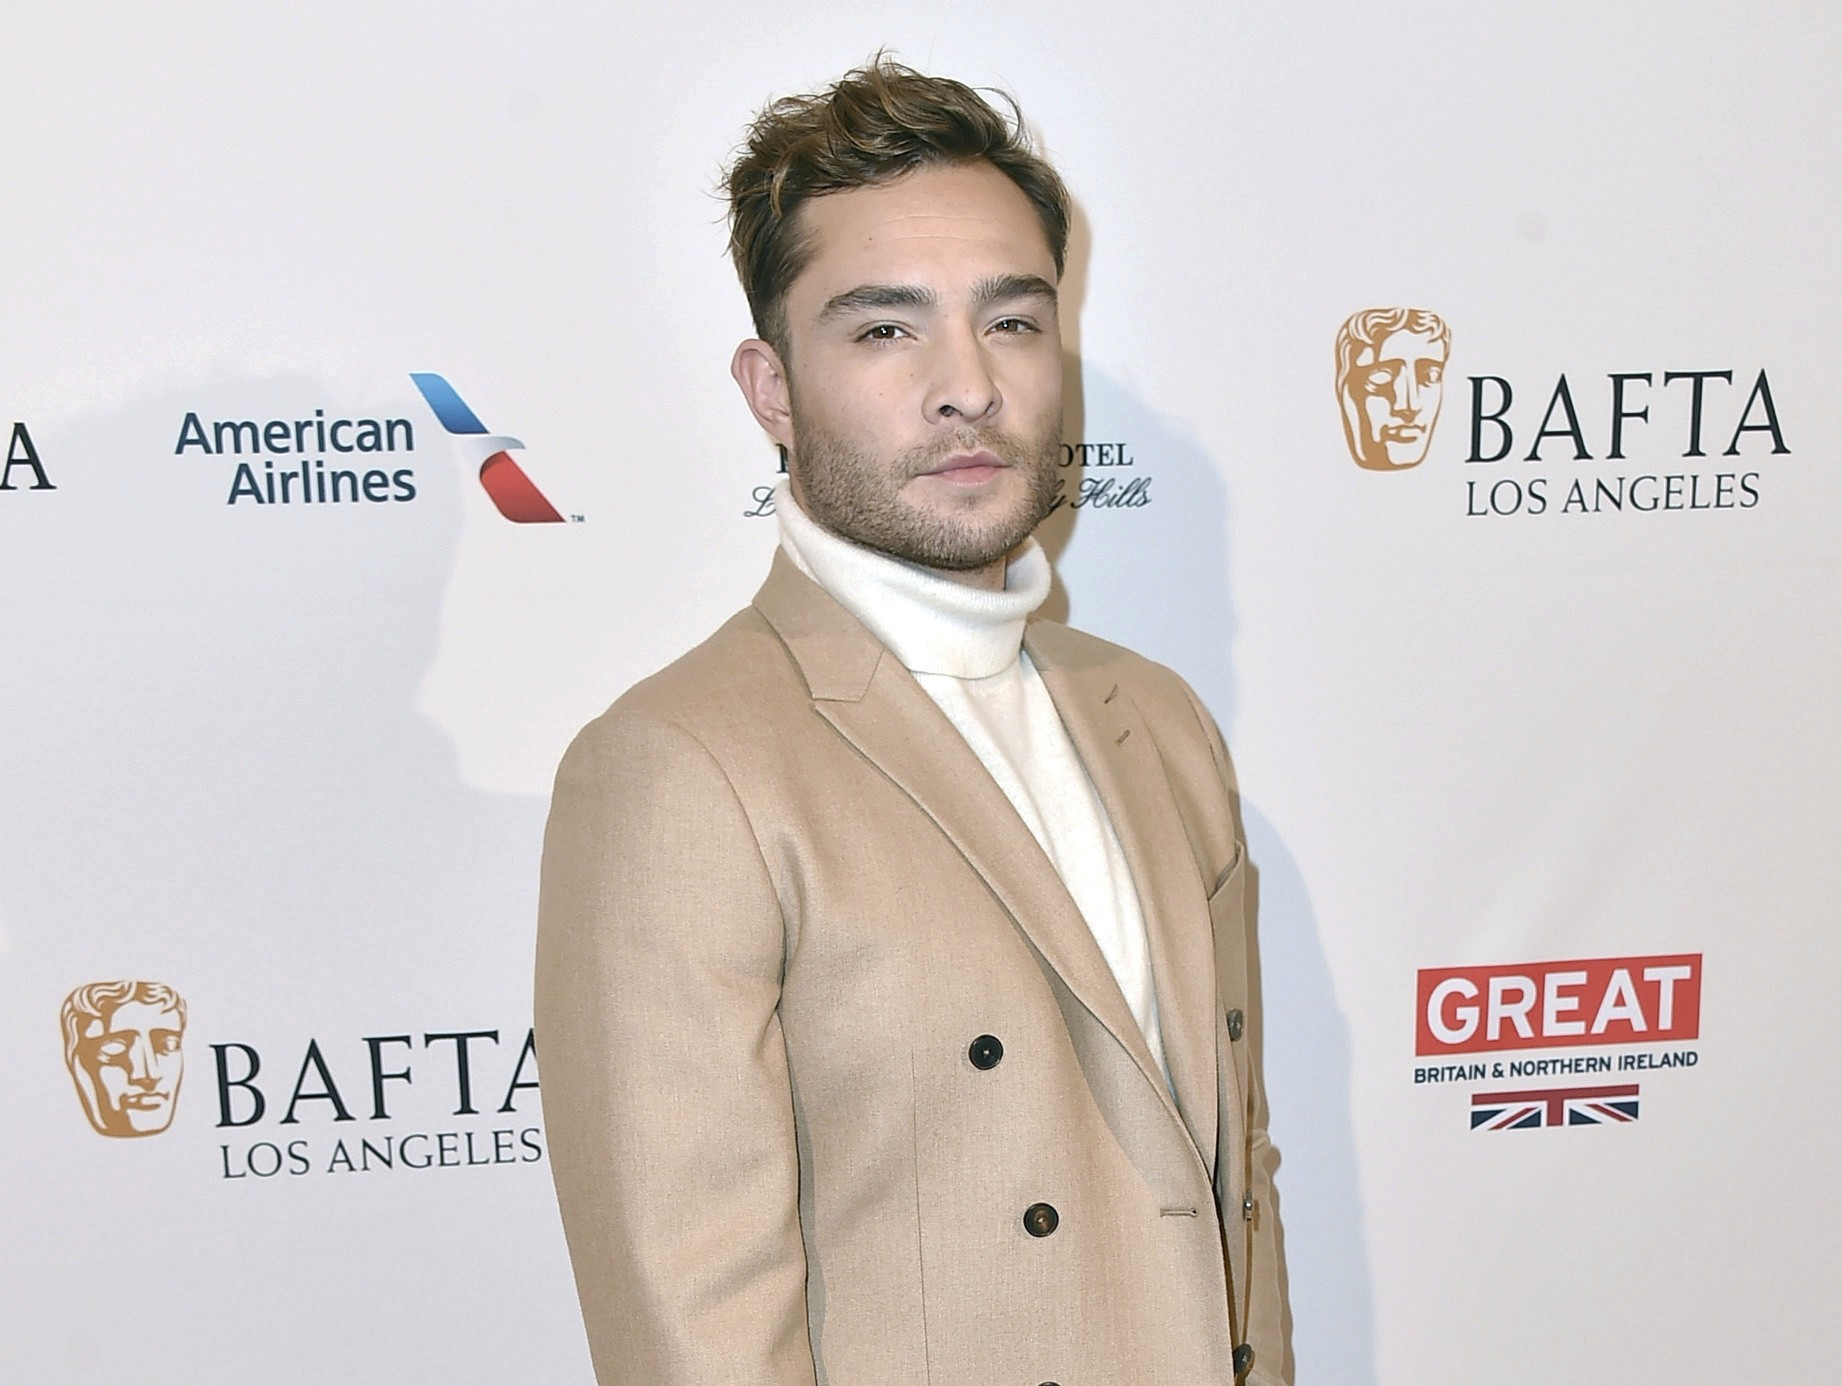 In this Jan. 9, 2016 file photo, Ed Westwick arrives at the BAFTA Awards Season Tea Party at the Four Seasons Hotel in Los Angeles. (AP Photo)